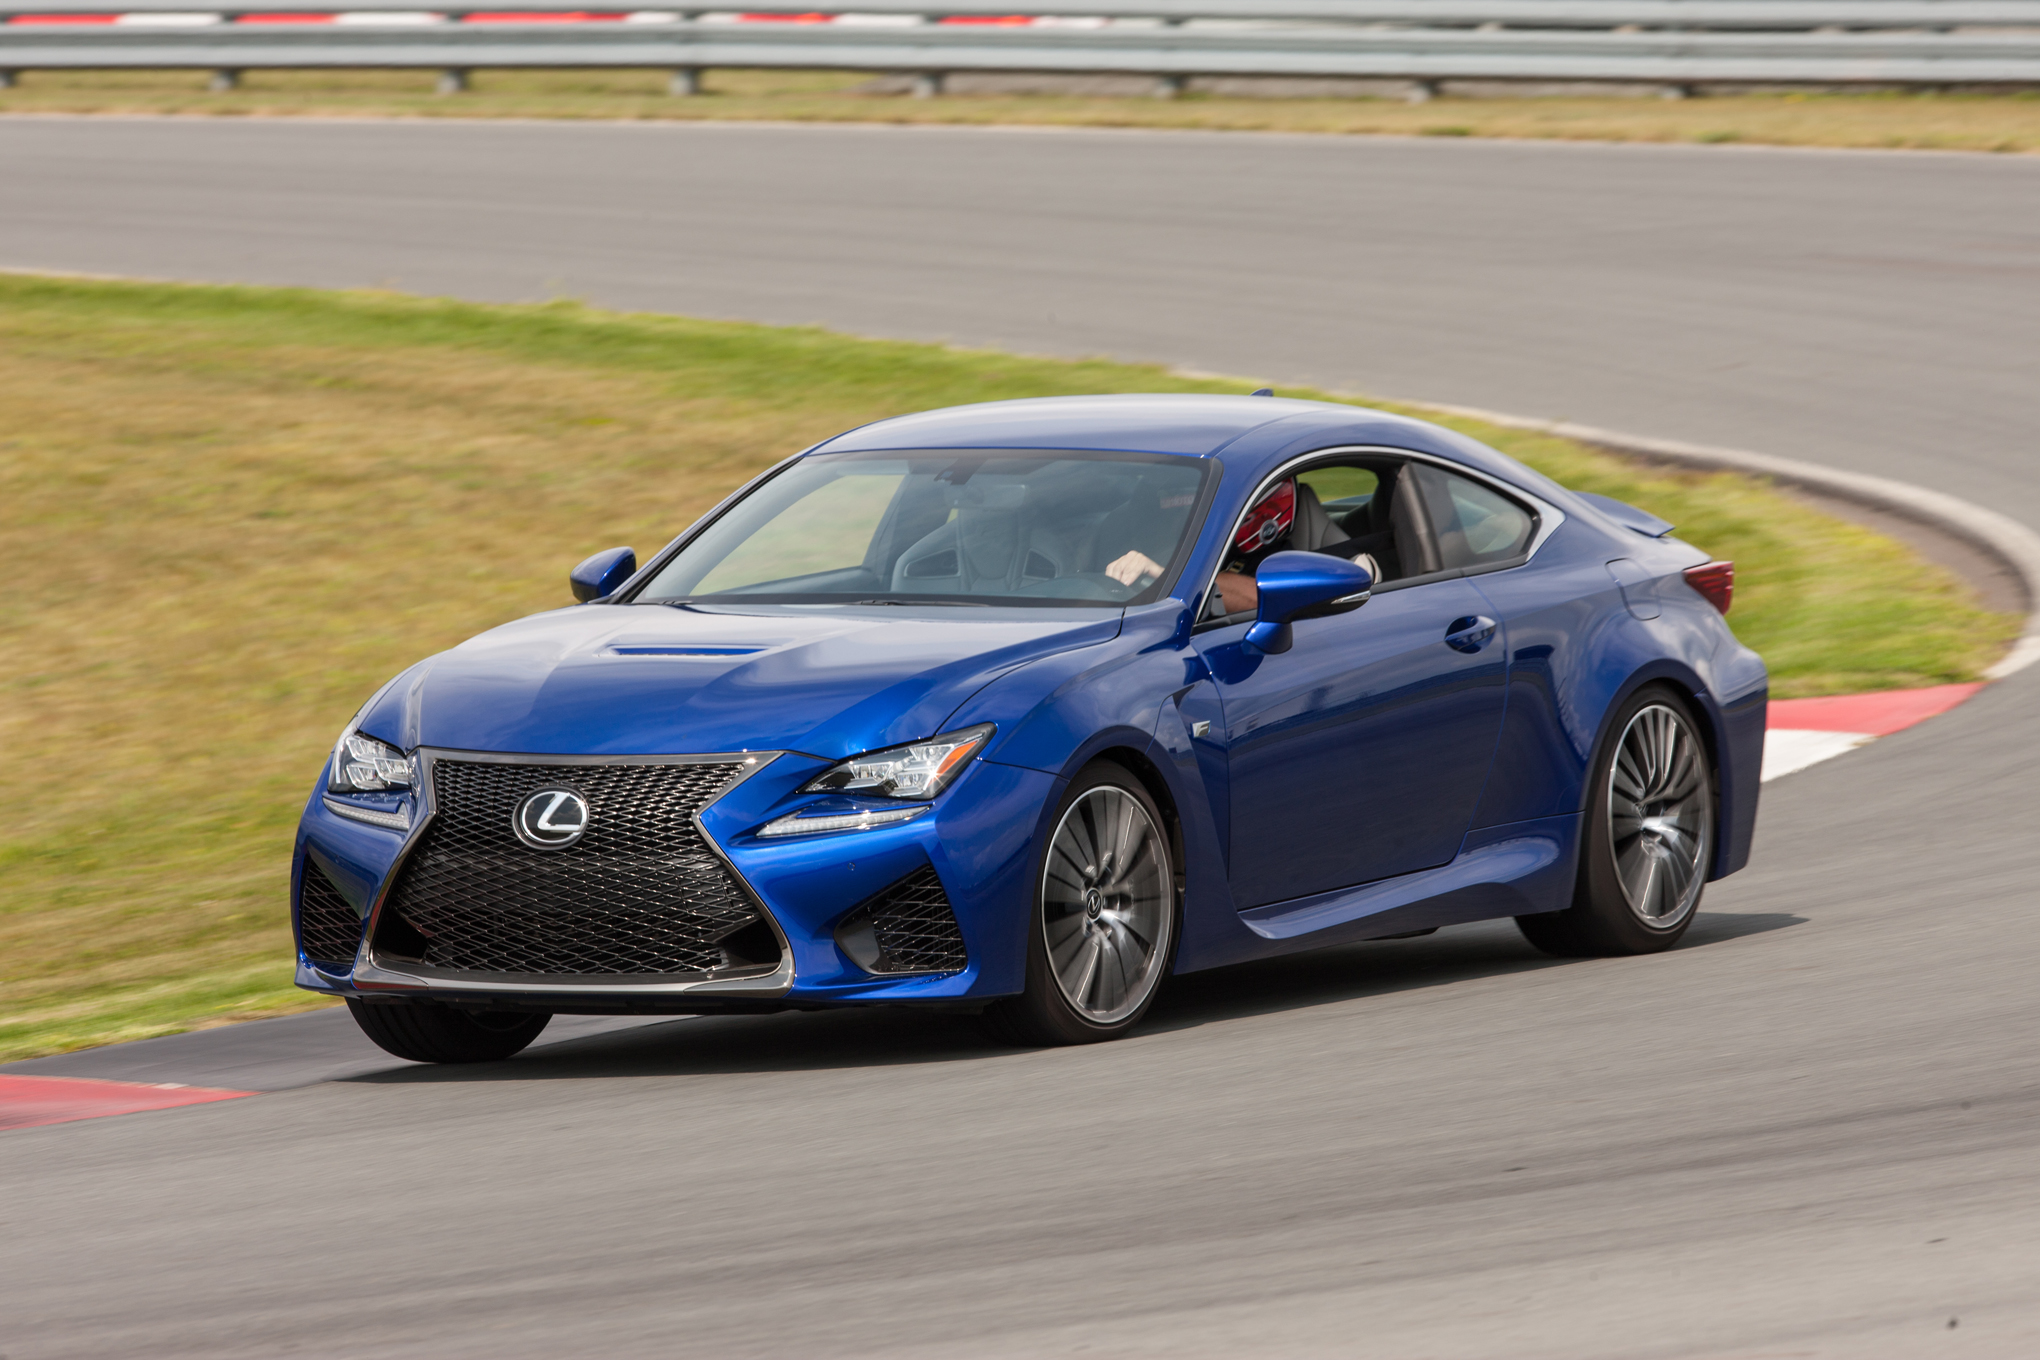 https://enthusiastnetwork.s3.amazonaws.com/uploads/sites/5/2014/09/2015-Lexus-RC-F-front-three-quarter-turn-031.jpg?impolicy=entryimage